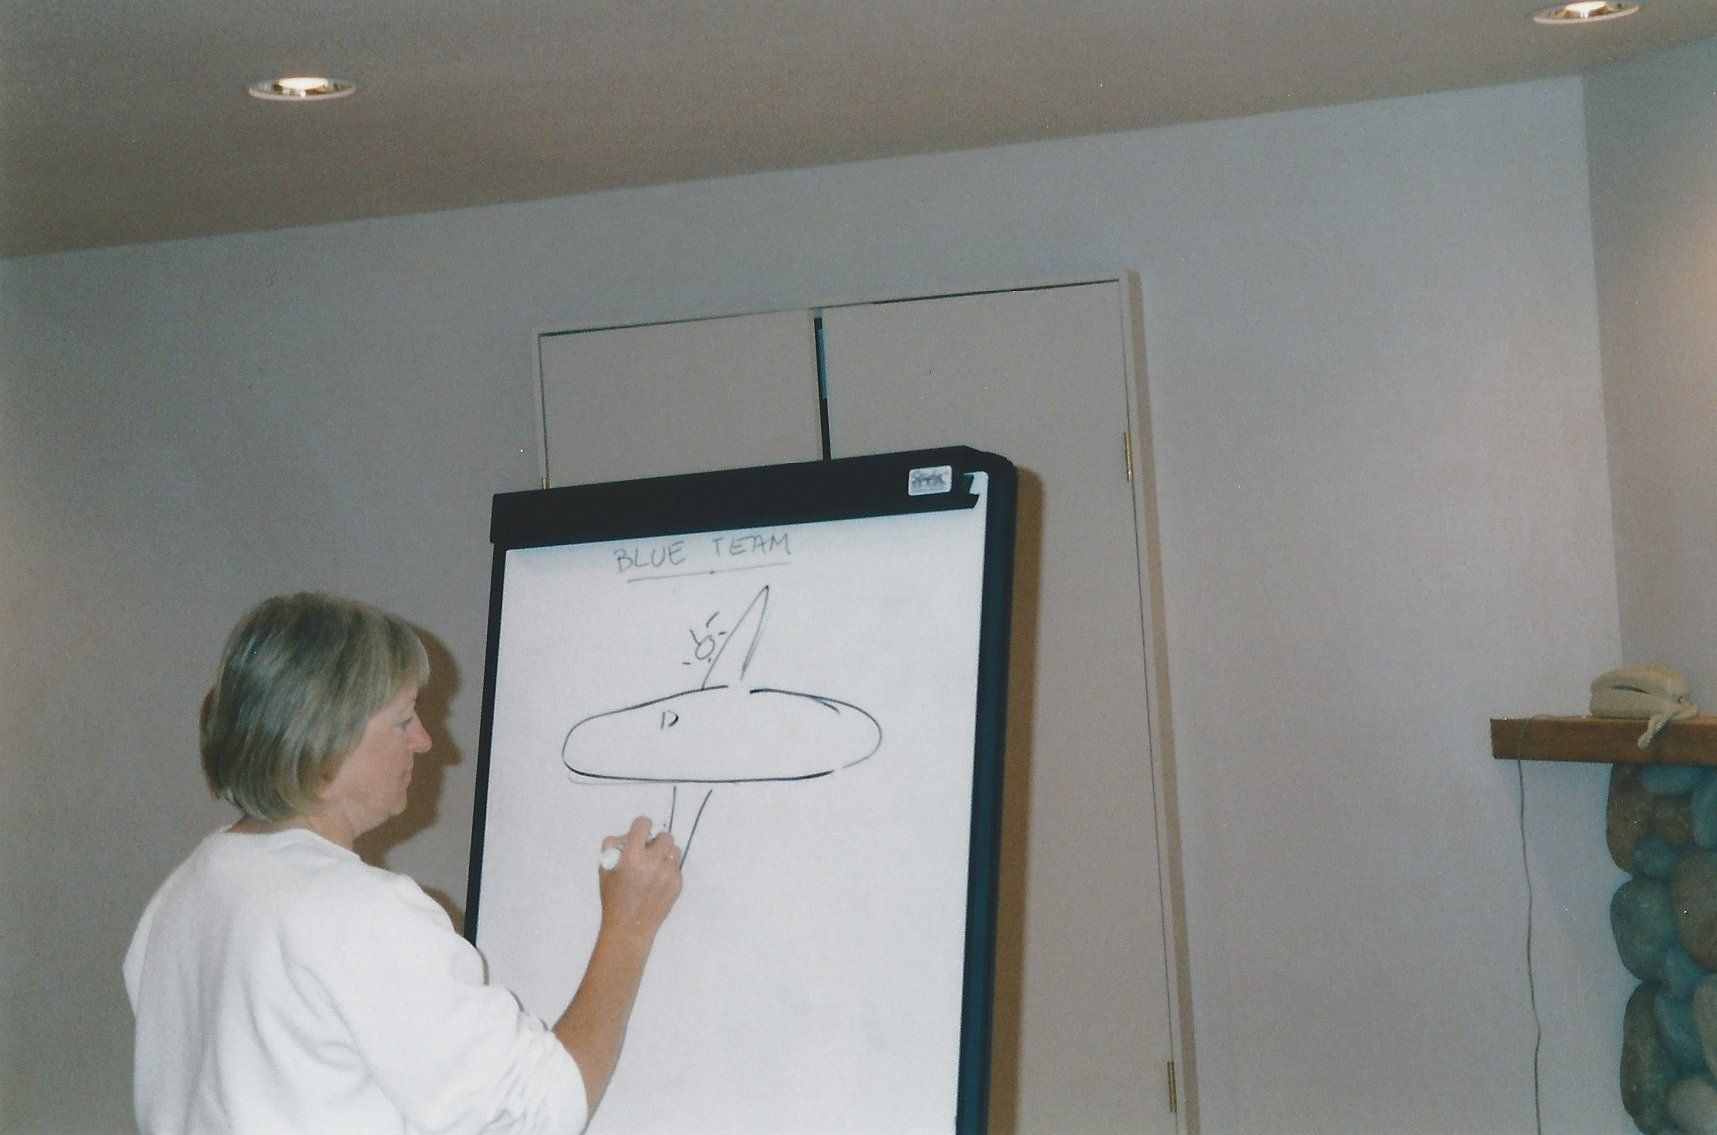 Office Pictionary, what do you think she's drawing?